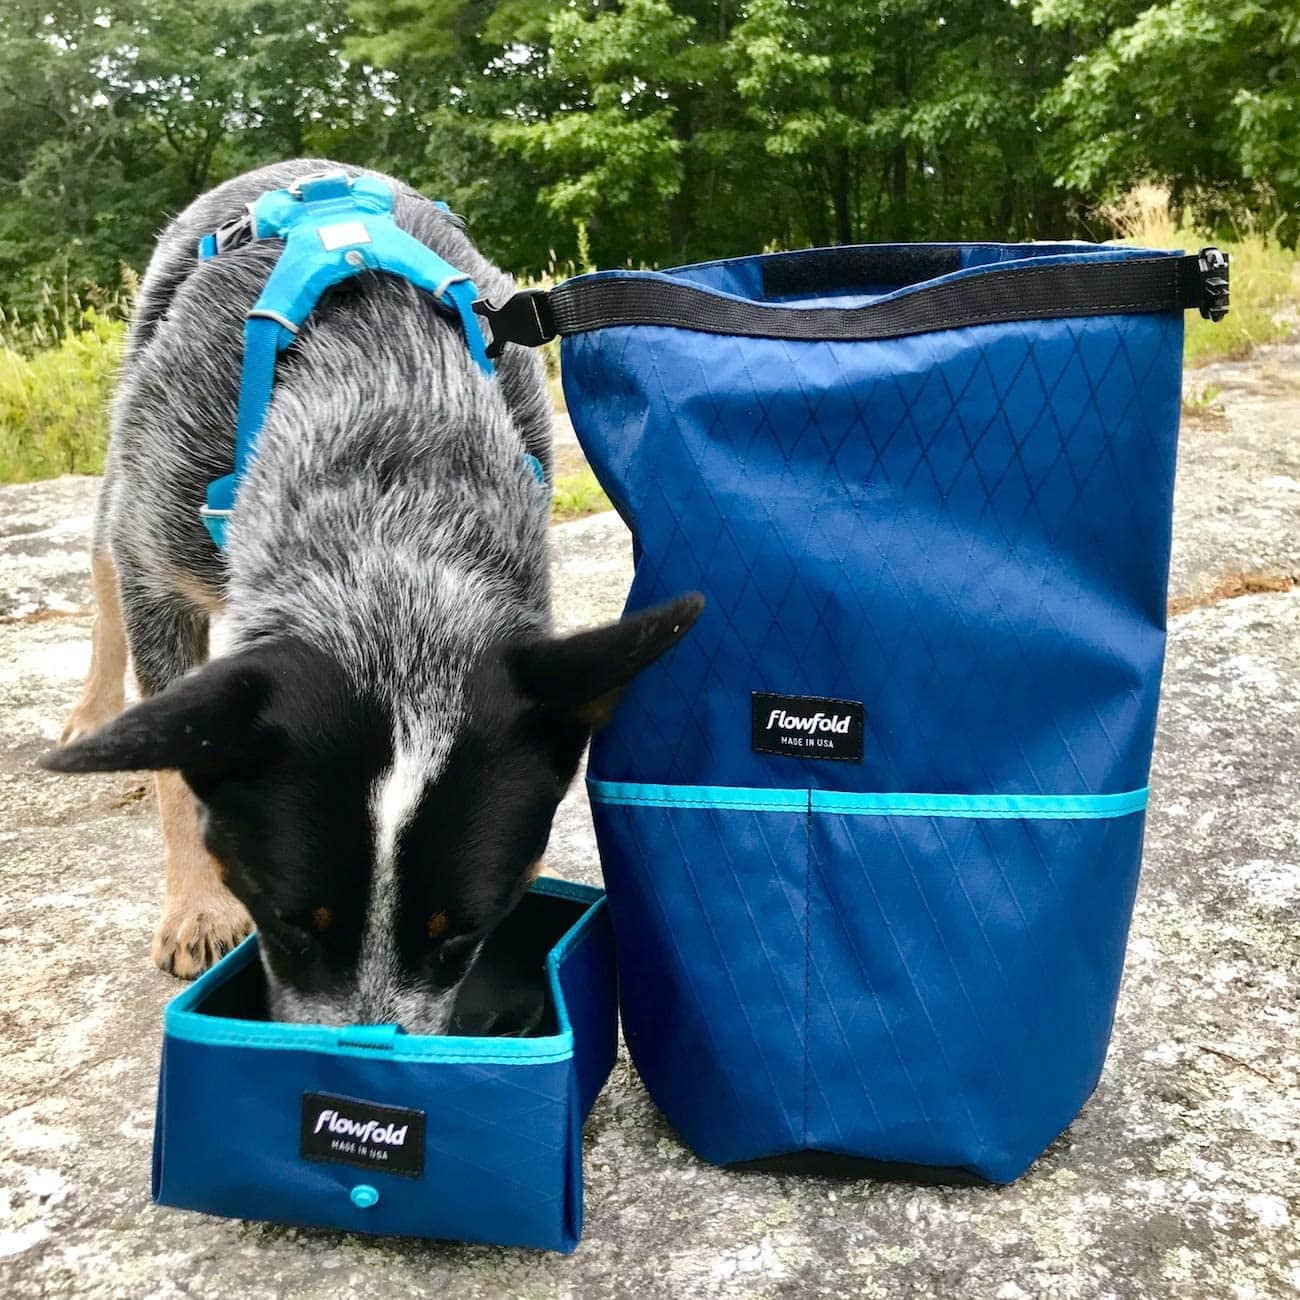 Flowfold Trailmate Dog Food Bag & Travel Bowl Made in Maine, USA